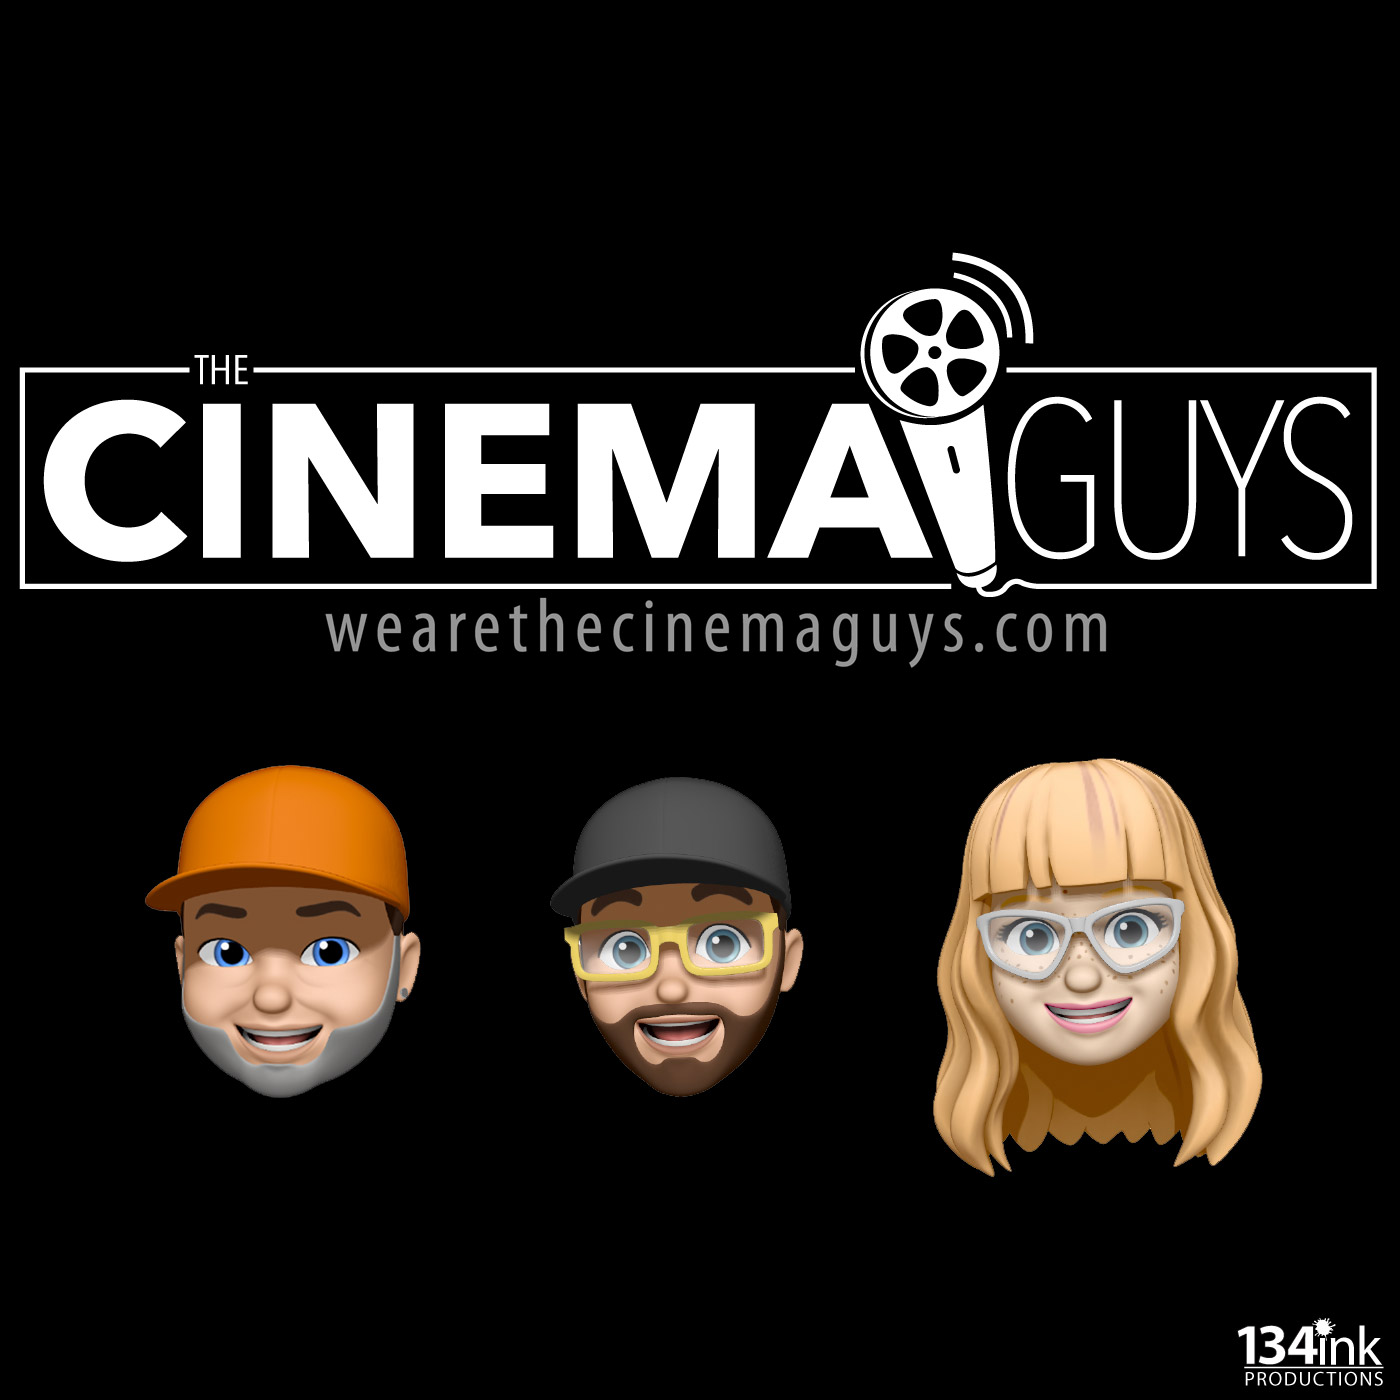 The Cinema Guys